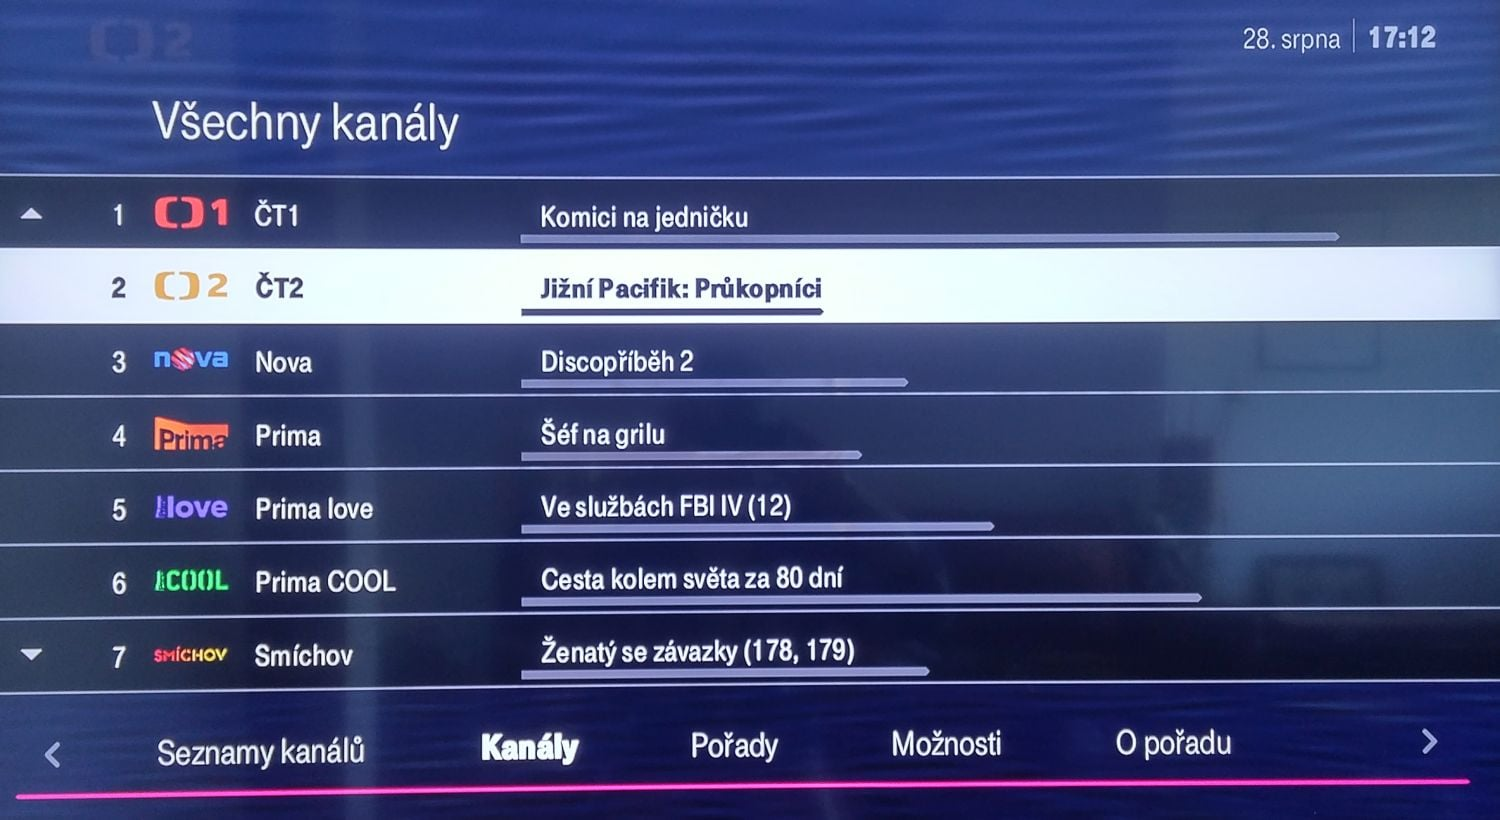 T-Mobile TV - kanály